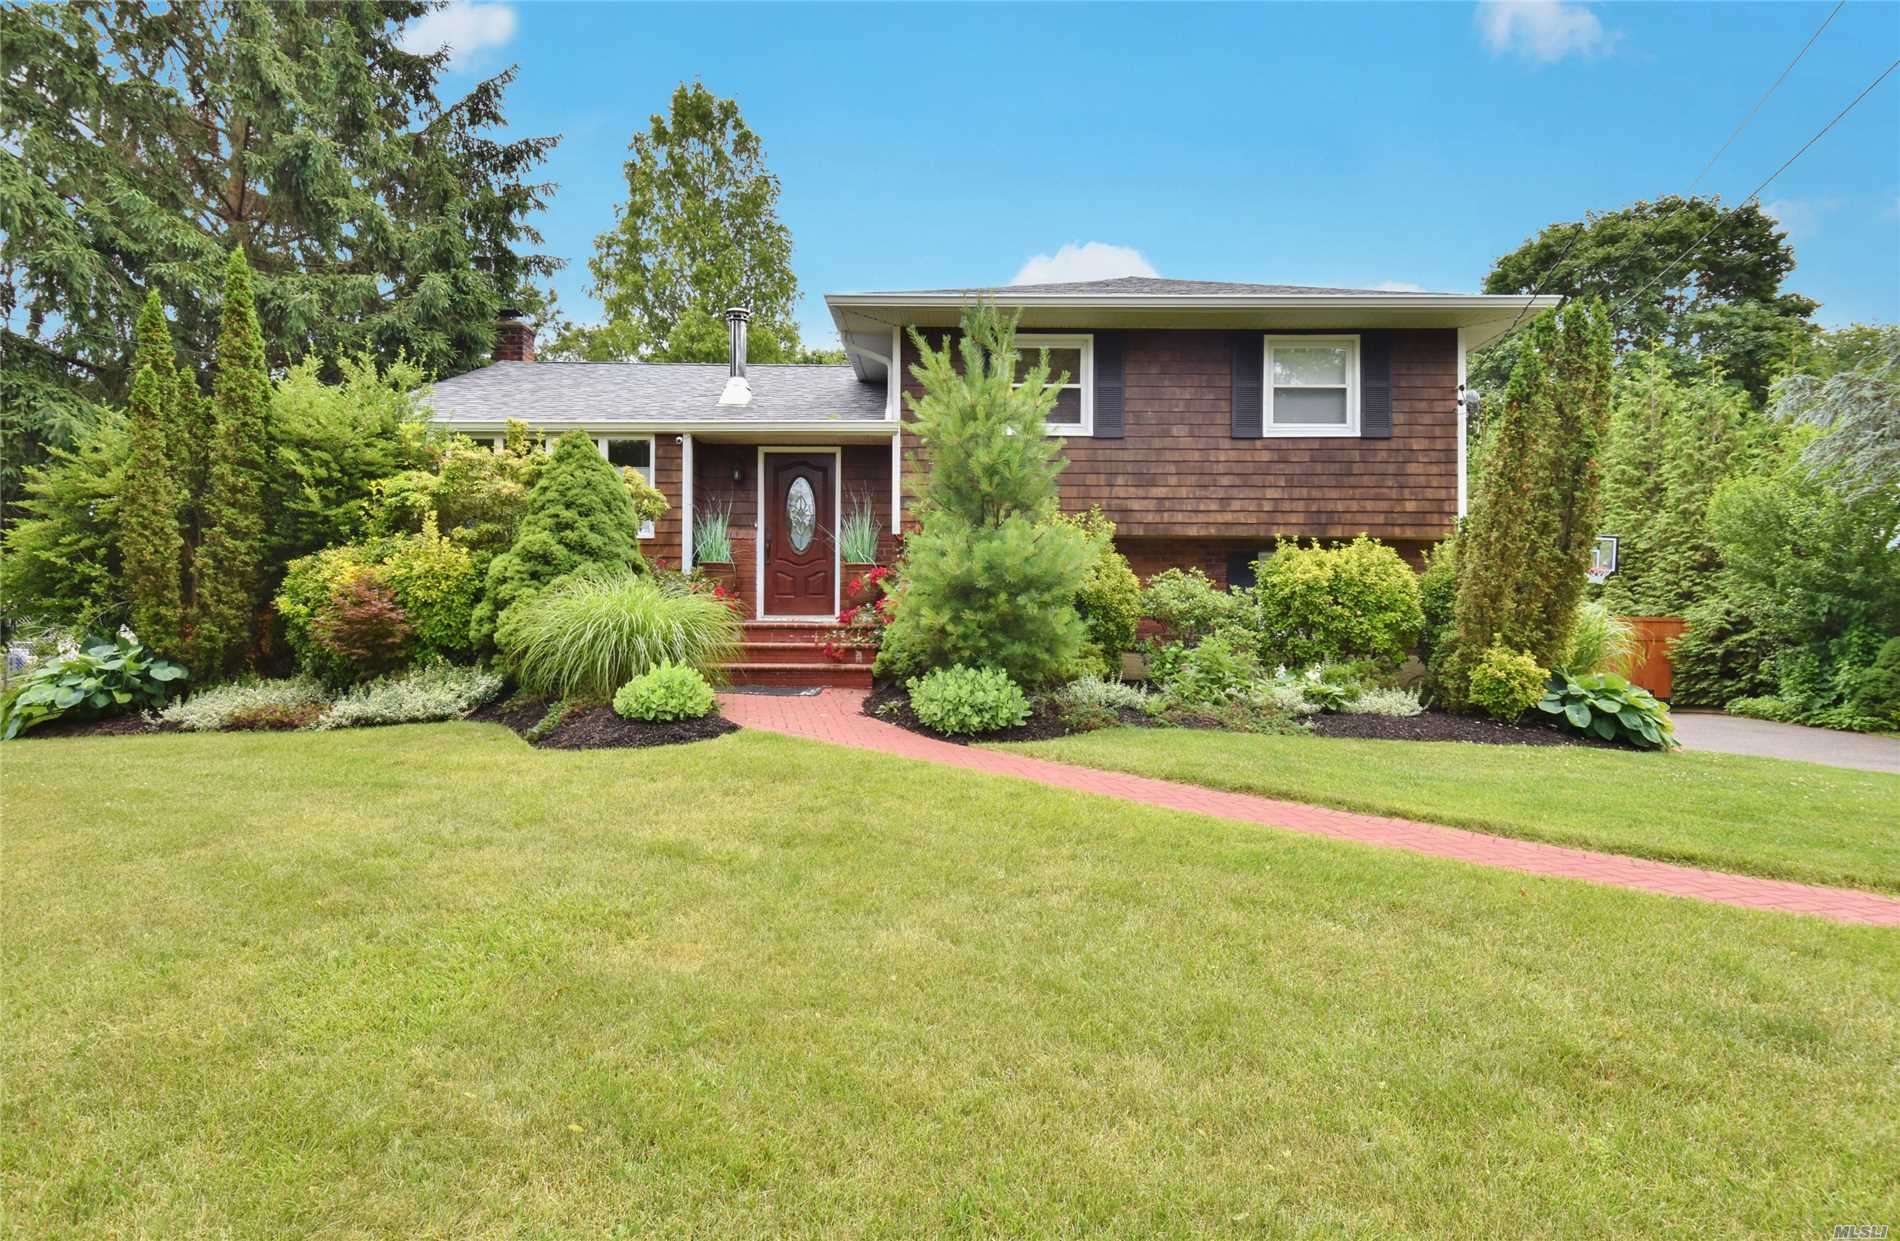 Sooooo Pretty! This Home Has It All. Beautifully Landscaped 1/2 Acre, Amazing In Ground Pool, Picture Perfect Inside And Out. Totally Updated, Great Open Floor Plan. Updates Include Doors & Windows, Gas Heating System, Cac, Electric 200 Amps. Nothing To Do But Unpack!